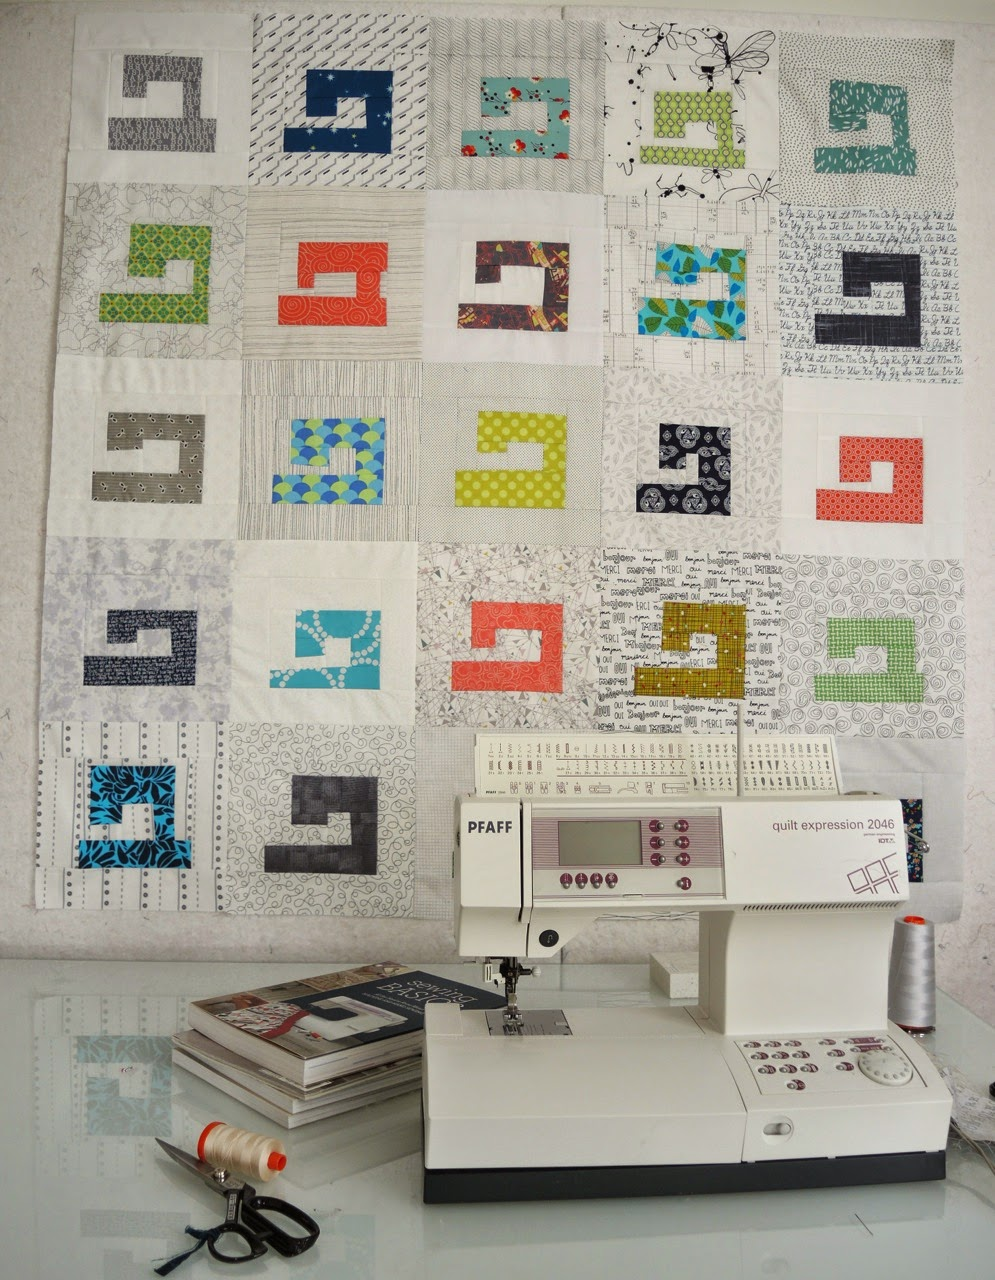 sewing+machine+quilt+1.jpg